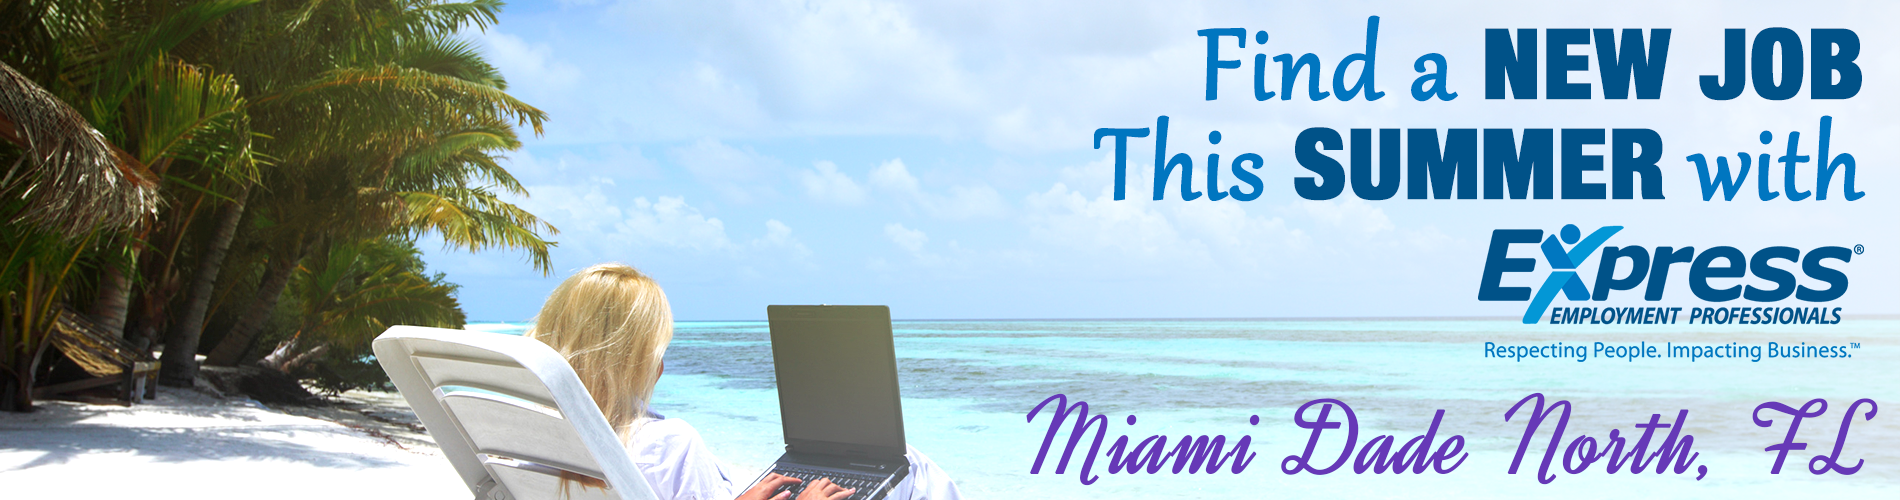 Summer Jobs In Miami, FL   Express Employment Professionals